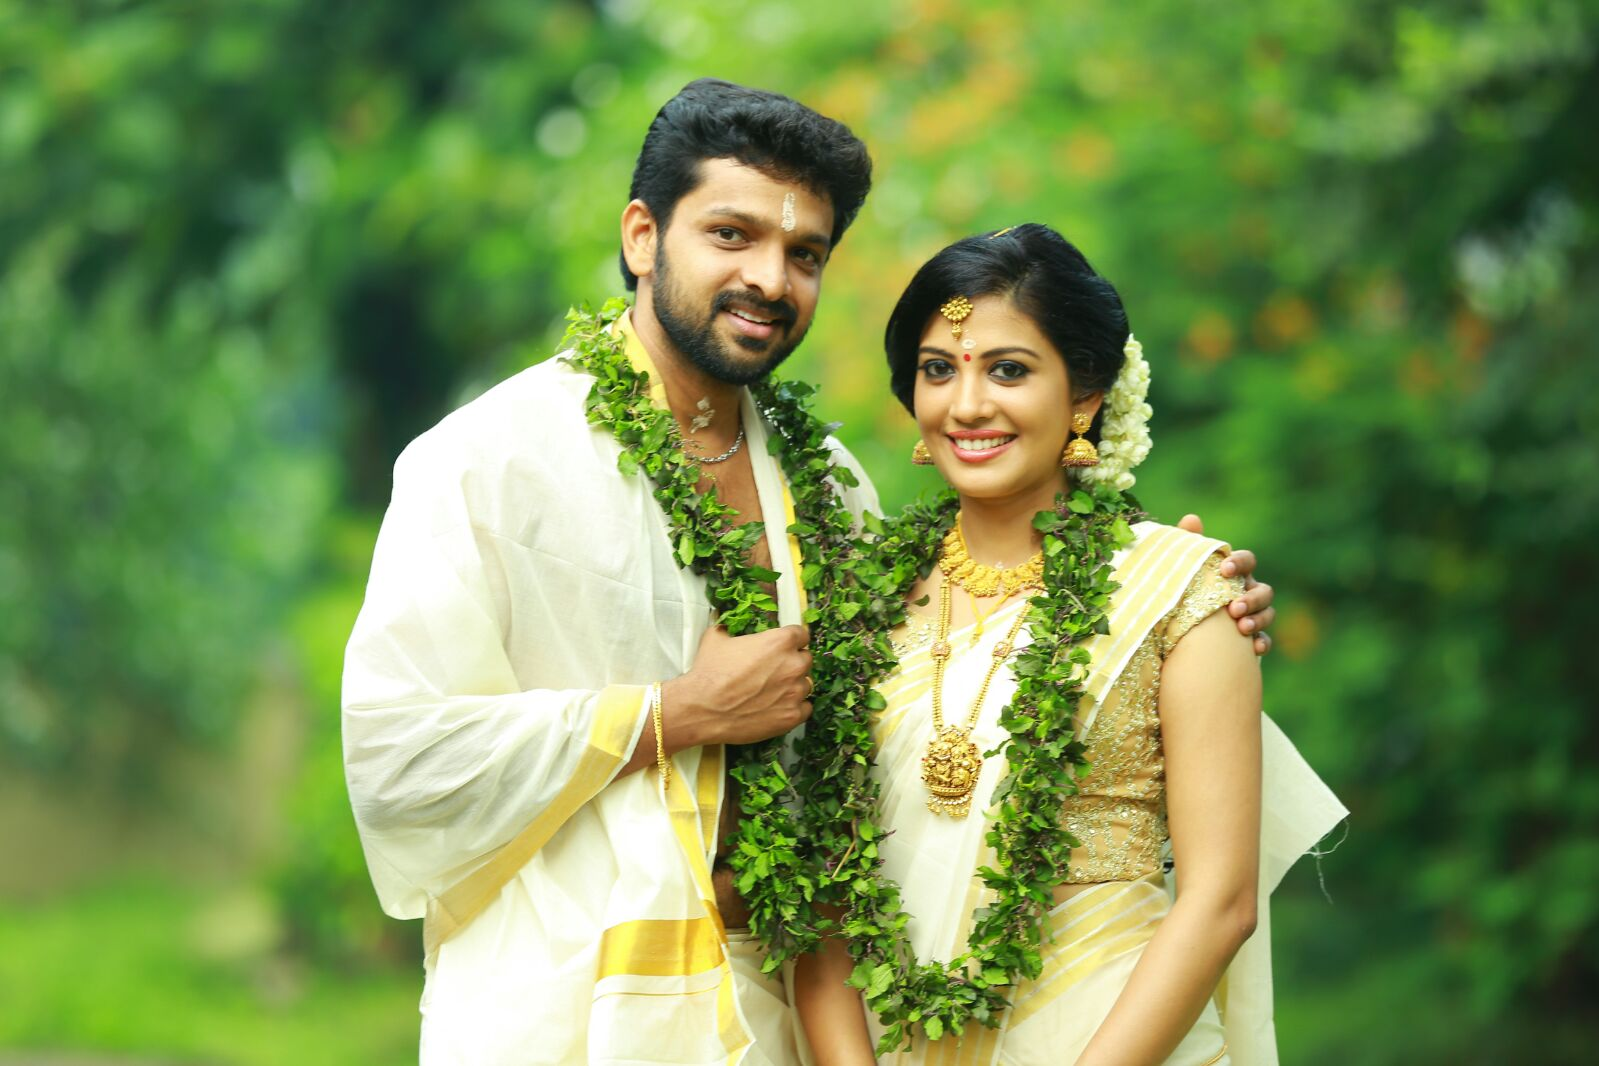 Sshivada Nair  Murali Krishnan Wedding Gallery  Gethu Cinema. Rugged Wedding Rings. Classical Rings. Starburst Engagement Rings. Frog Rings. Sonar Engagement Rings. Cute Little Wedding Rings. Kays Engagement Rings. Amber Engagement Rings